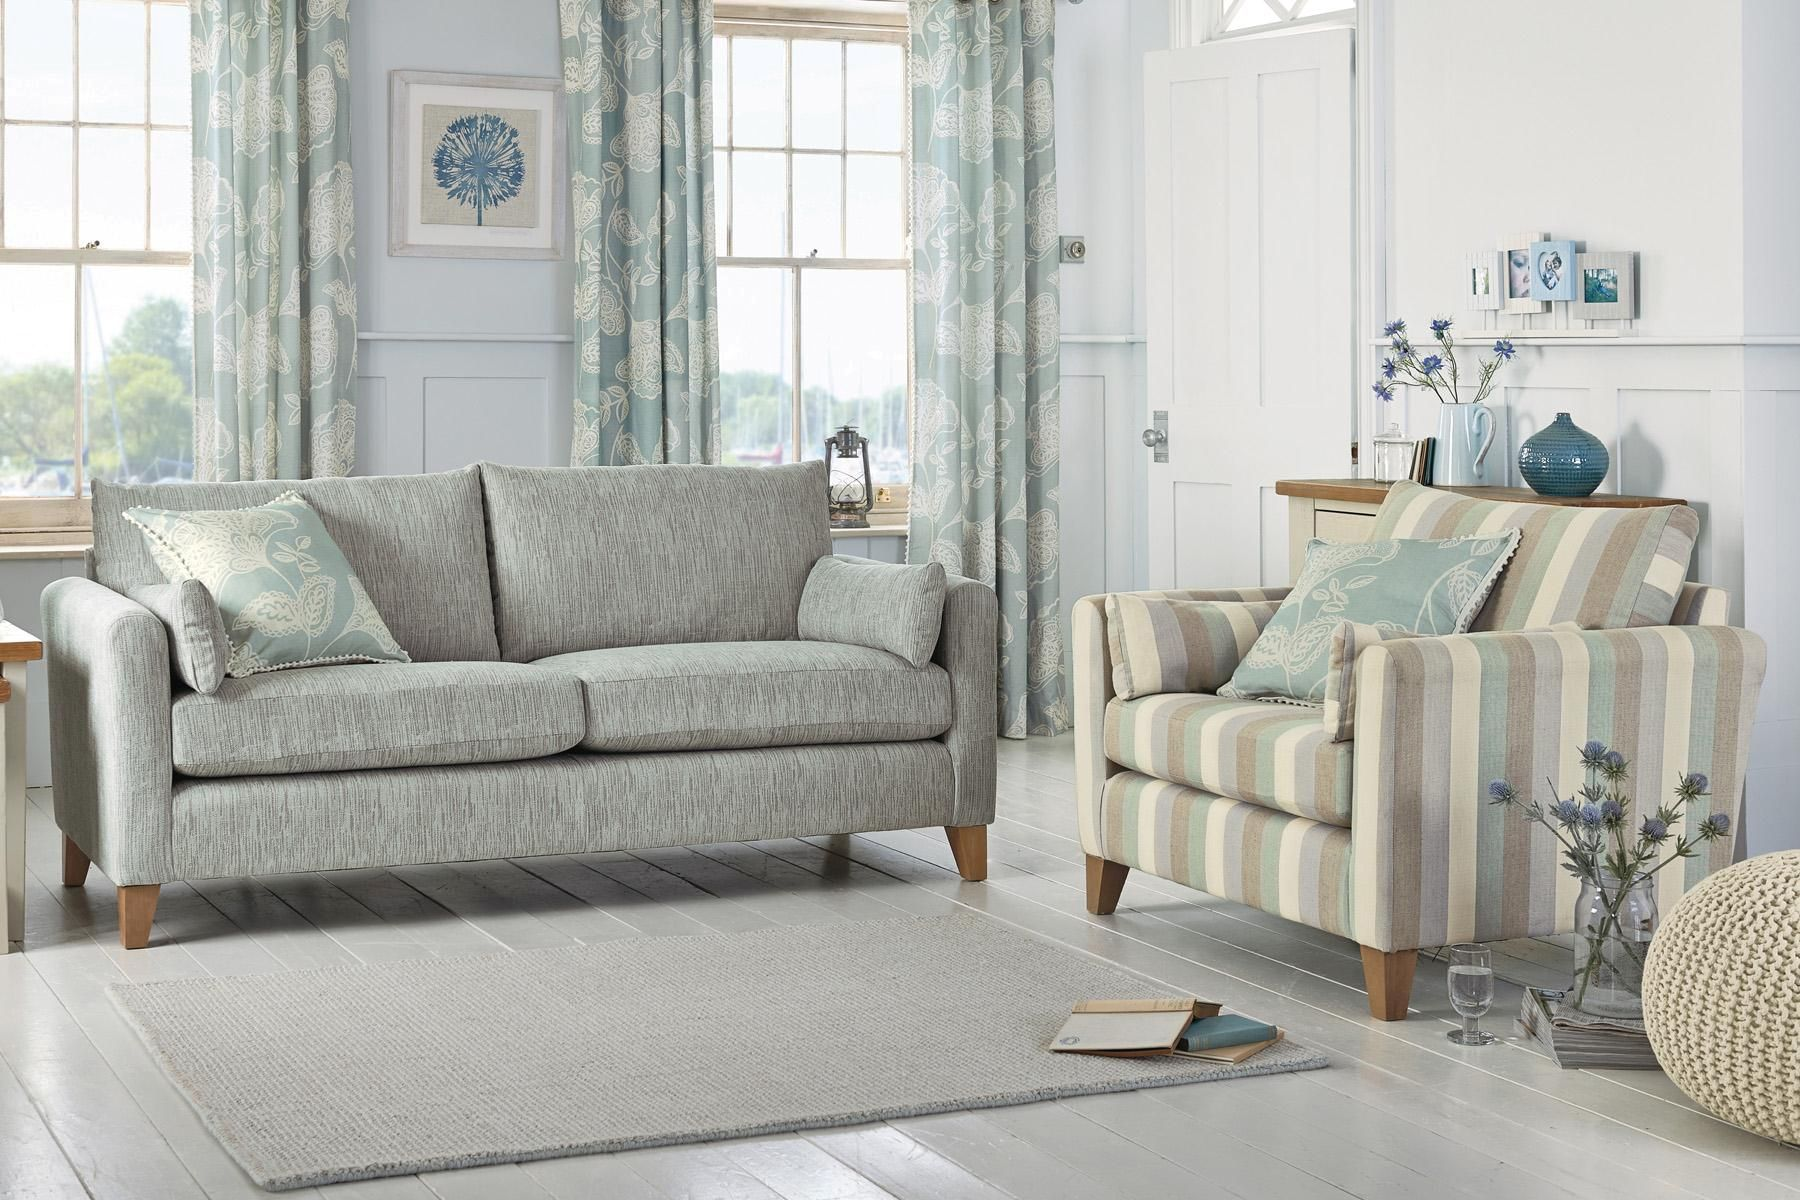 Style Of Sofa Rather Than Coloursthough If I Had More Confidence New Living RoomLiving Room IdeasBlue